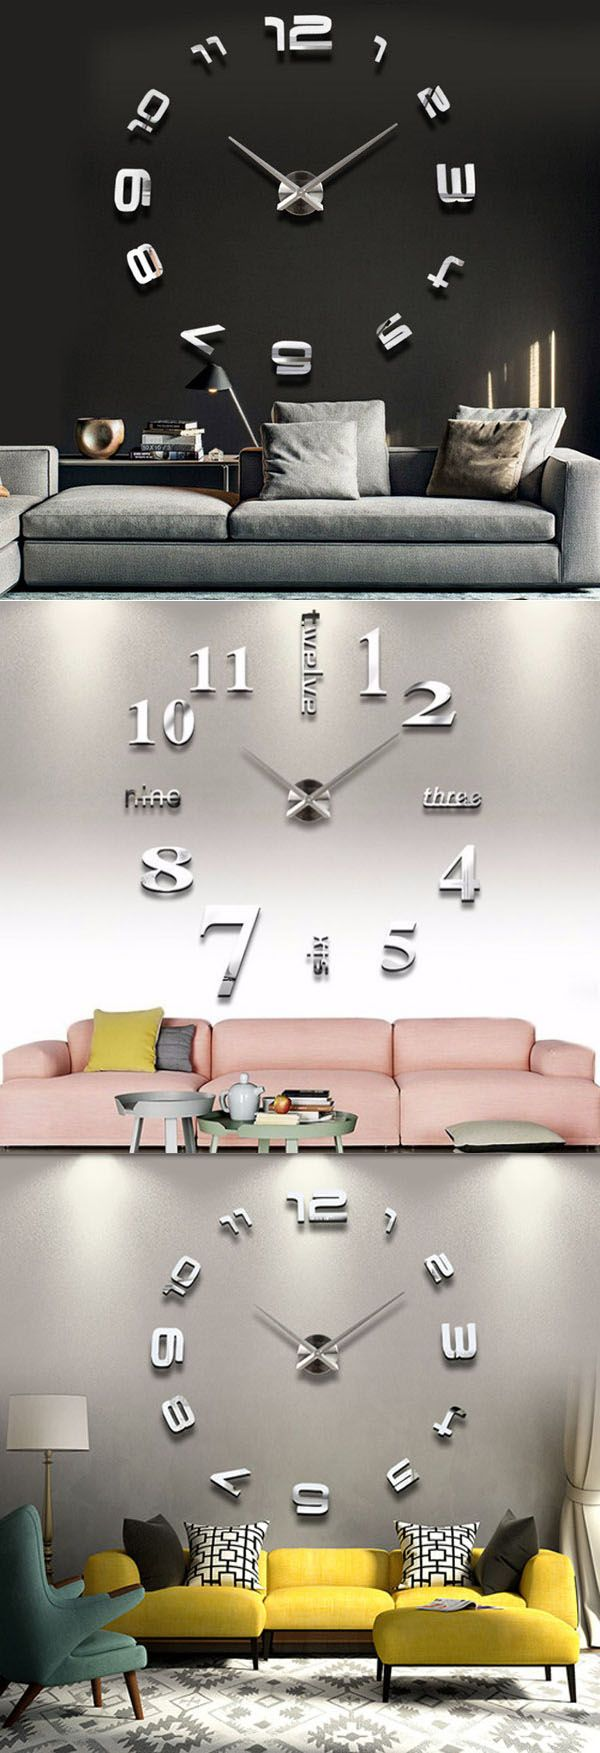 3d large sliver modern diy home decor mirror wall clock sticker mirror wallsmirror wall clockdiy wall clocksbig